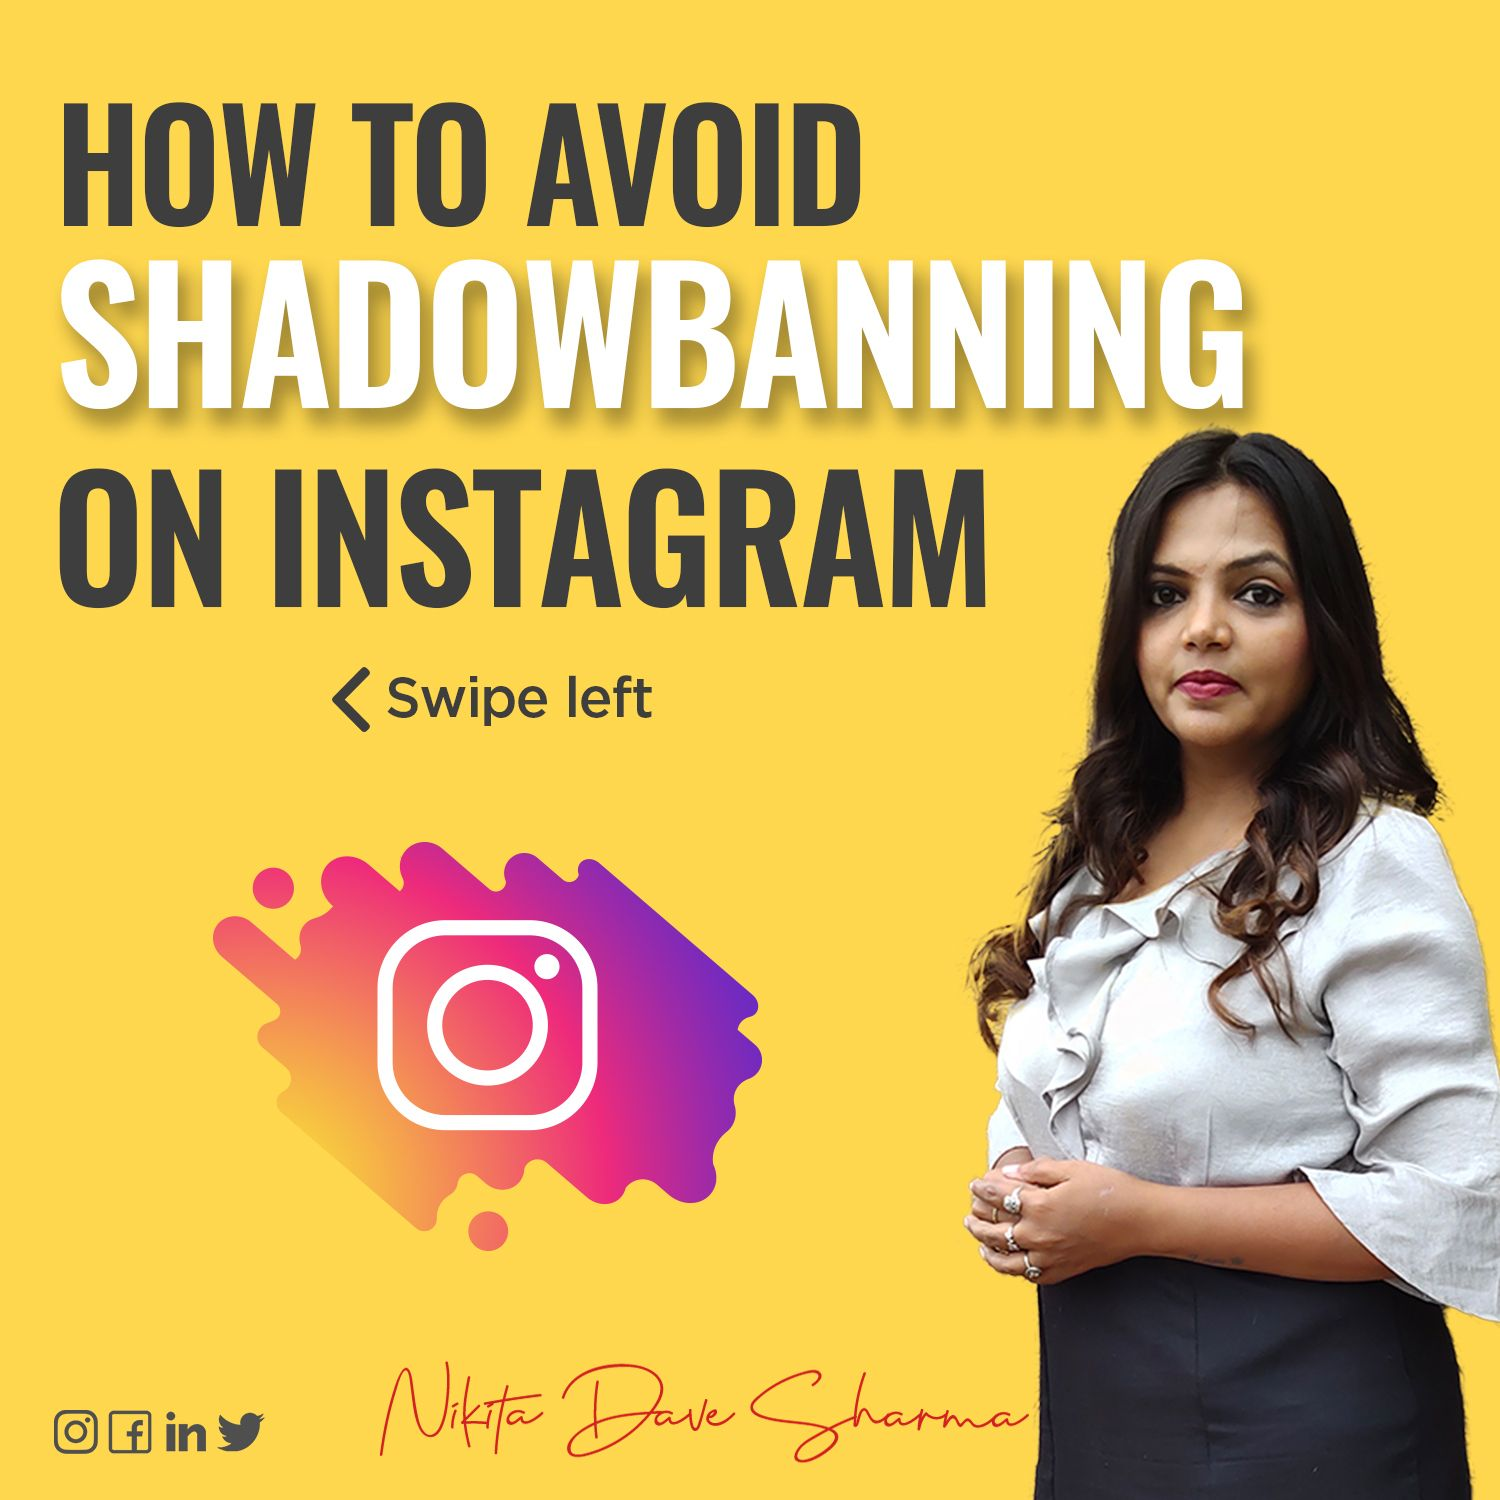 How to avoid shadowbanning on Instagram.  don't forget to visit us on given link . . . #Icraft #ICraftads #MarketingAgency #StrategicMarketing #BrandingBoss #BrandingExpert #DigitalMarketingAgency #MarketingStrategy #CreatewithIntention #MarketingwithIntention #DigitalMarketingExpert #InstagramMarketing